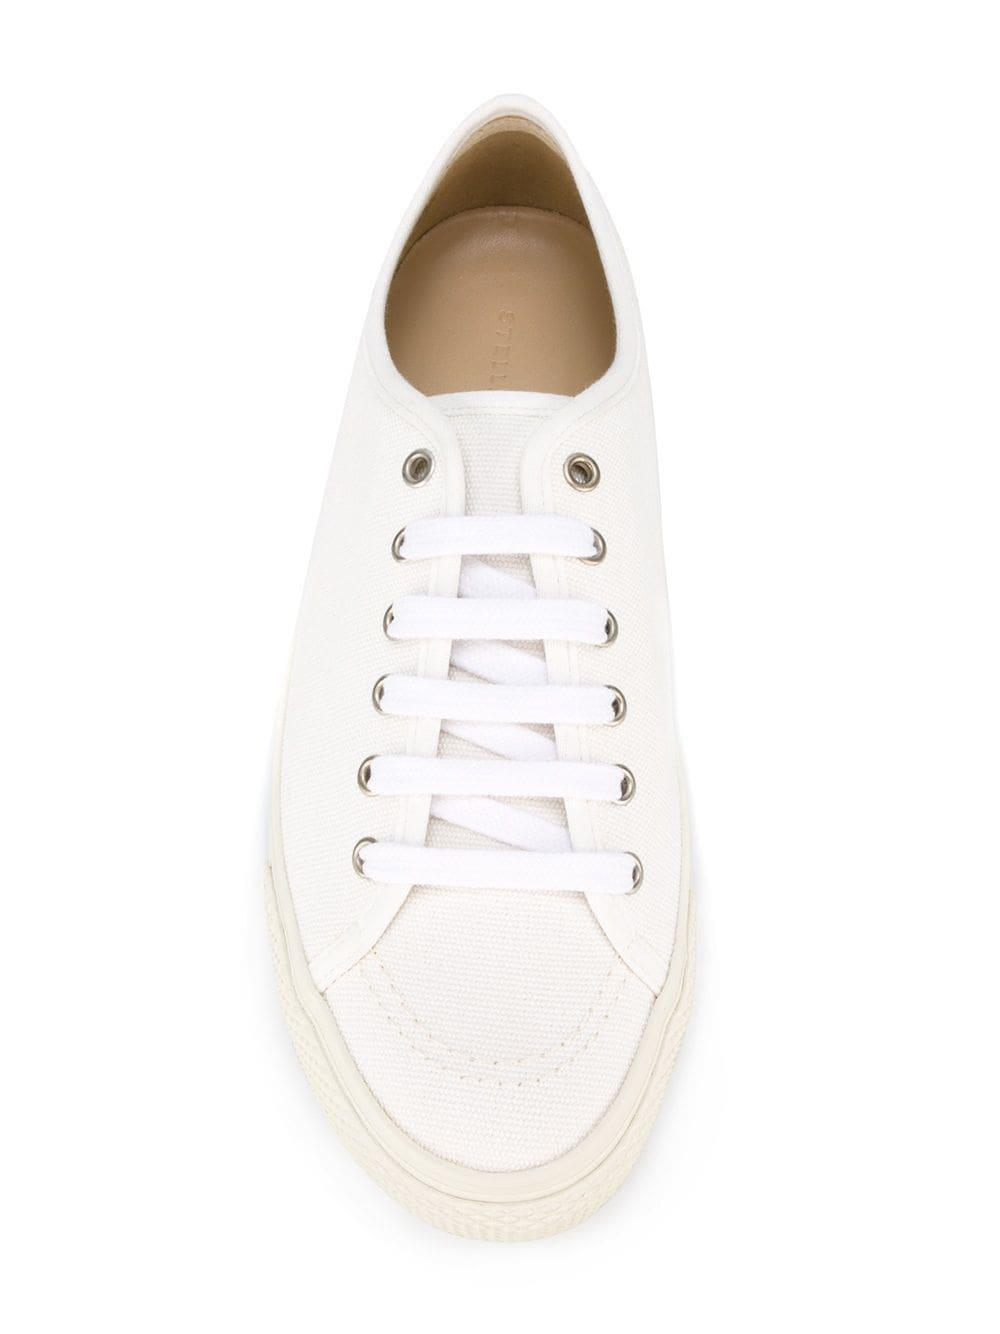 Stella McCartney Classic Canvas Sneakers in White for Men